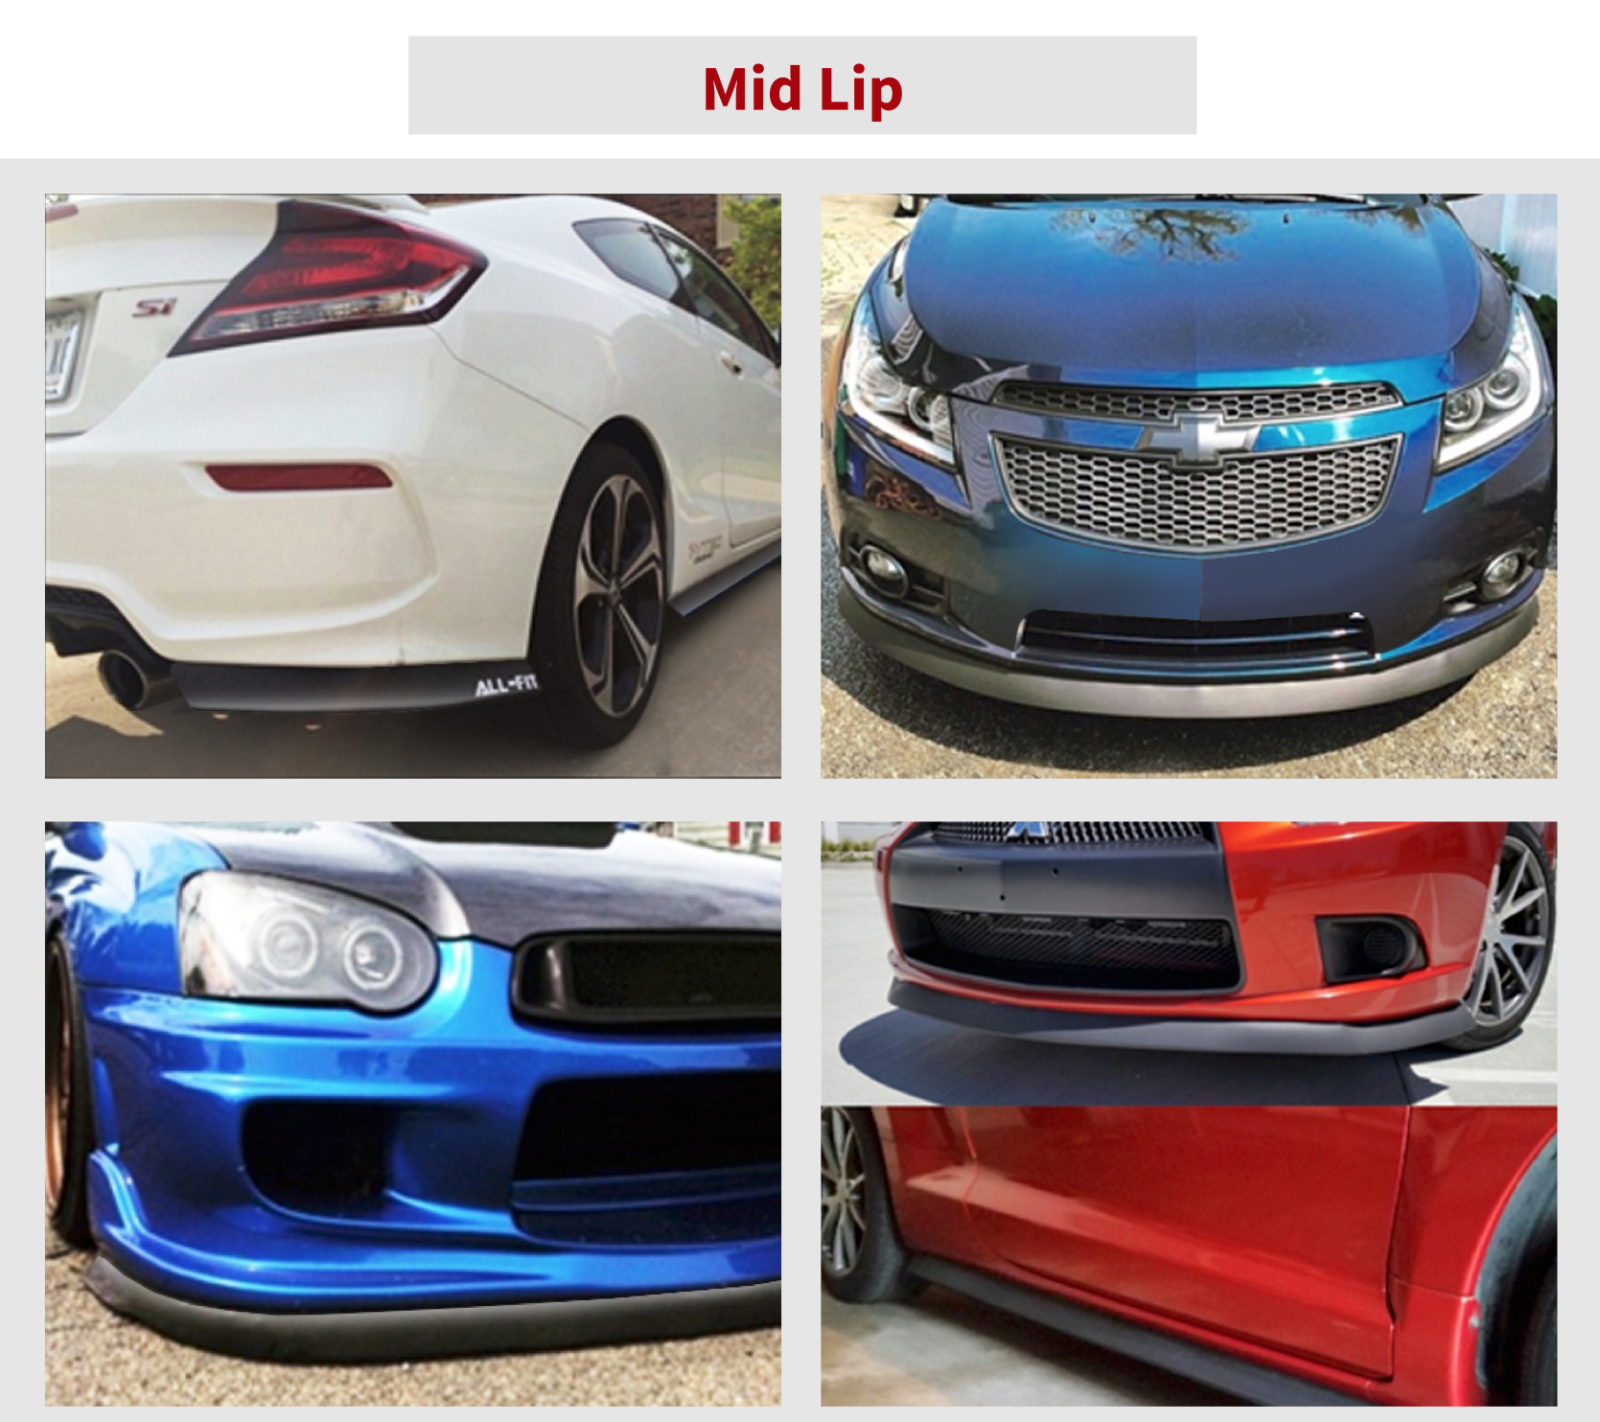 ORIGINAL ALL-FIT LIP KIT M Universal Spoiler Lippe Frontspoiler Seitenschweller 2